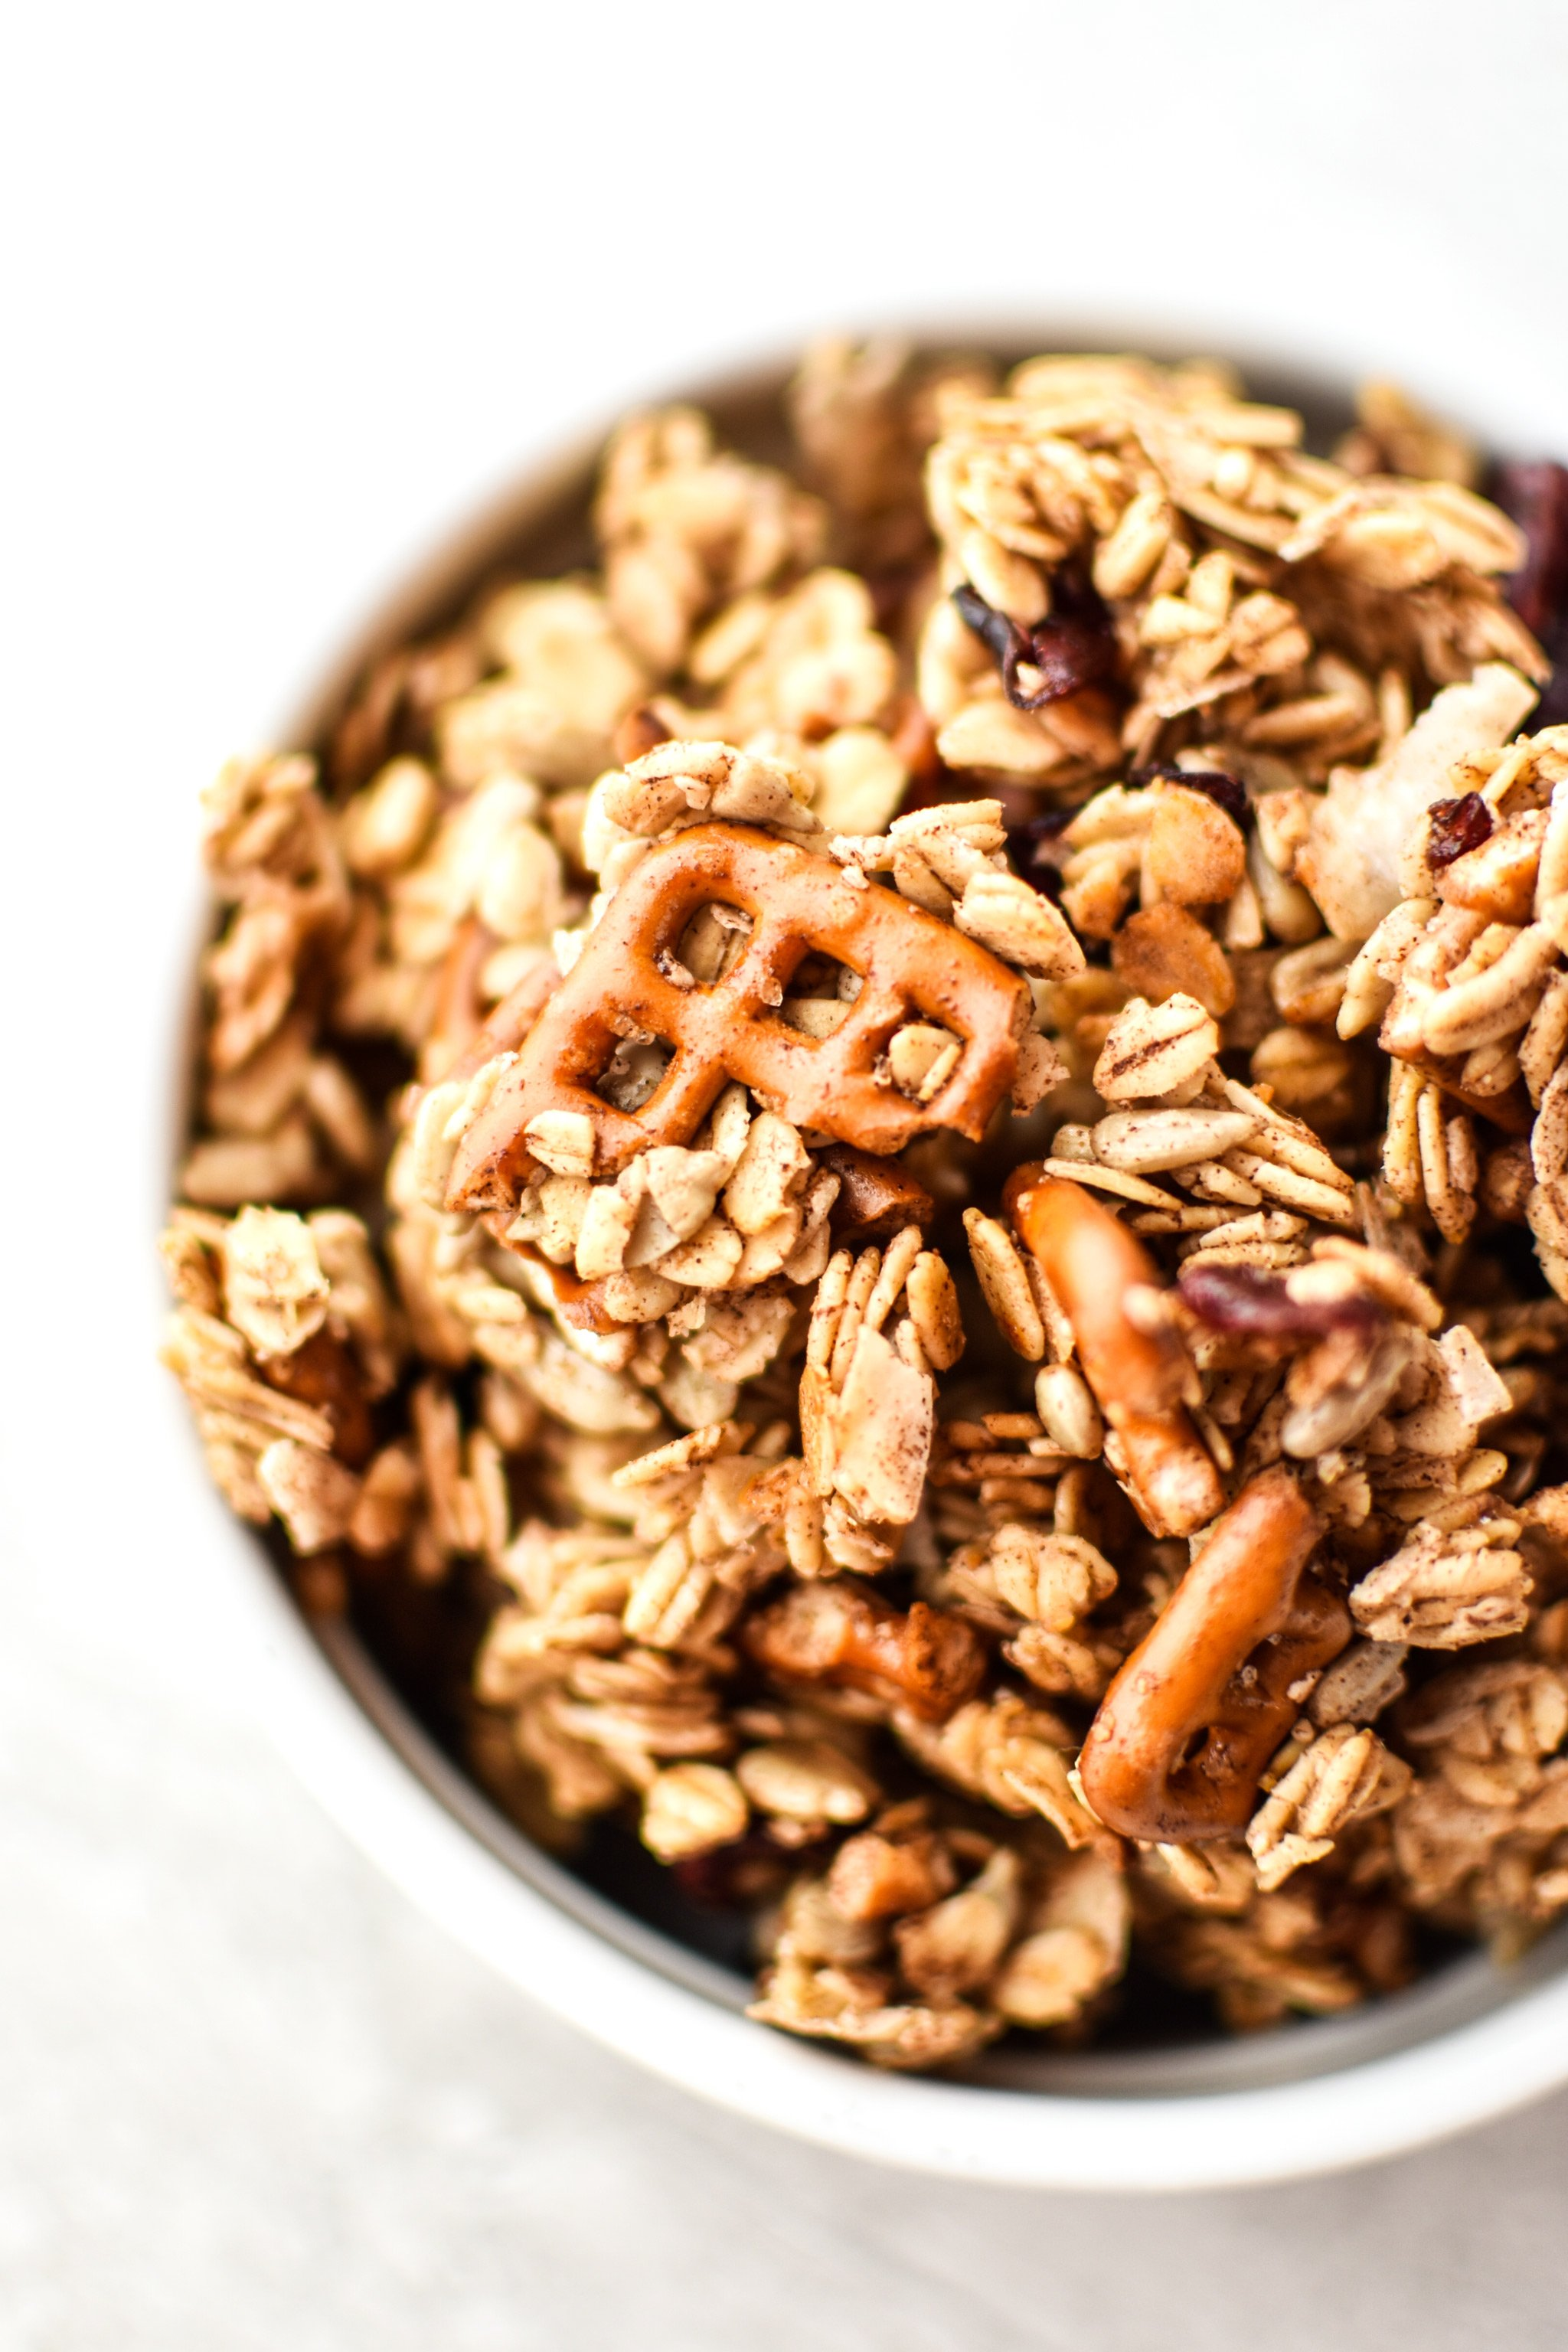 Super Clumpy Nut Free Snack Mix Granola Project Meal Plan